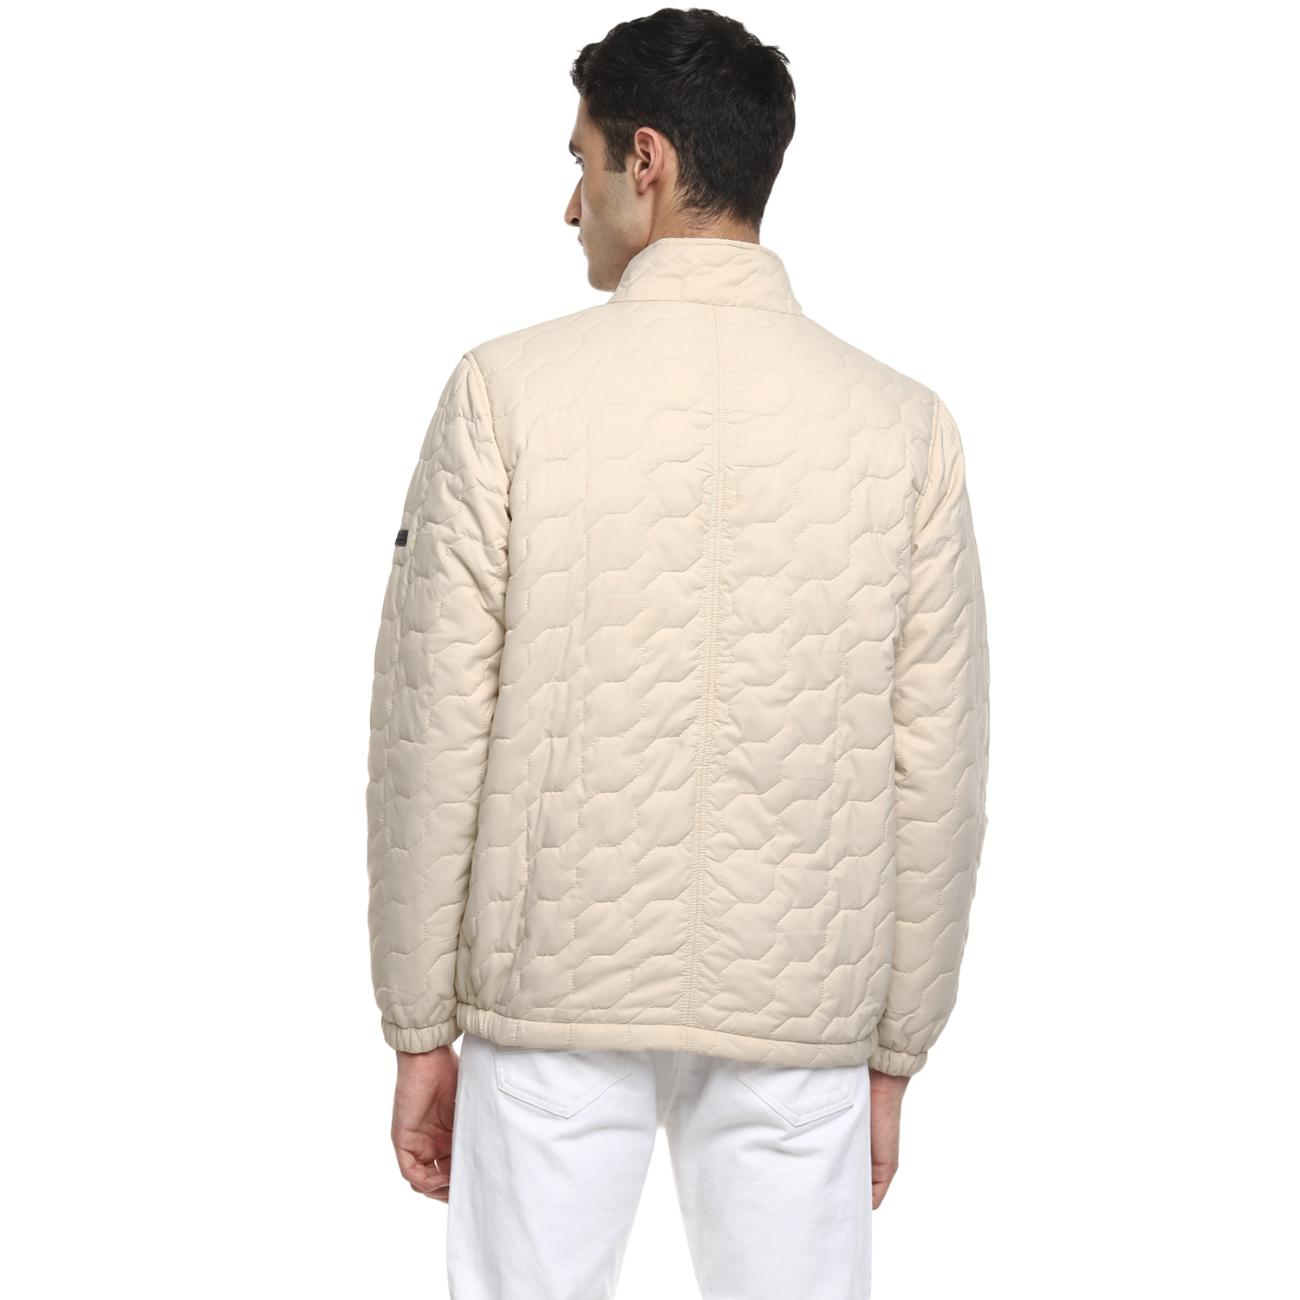 Red Chief's Cream Jacket For Men